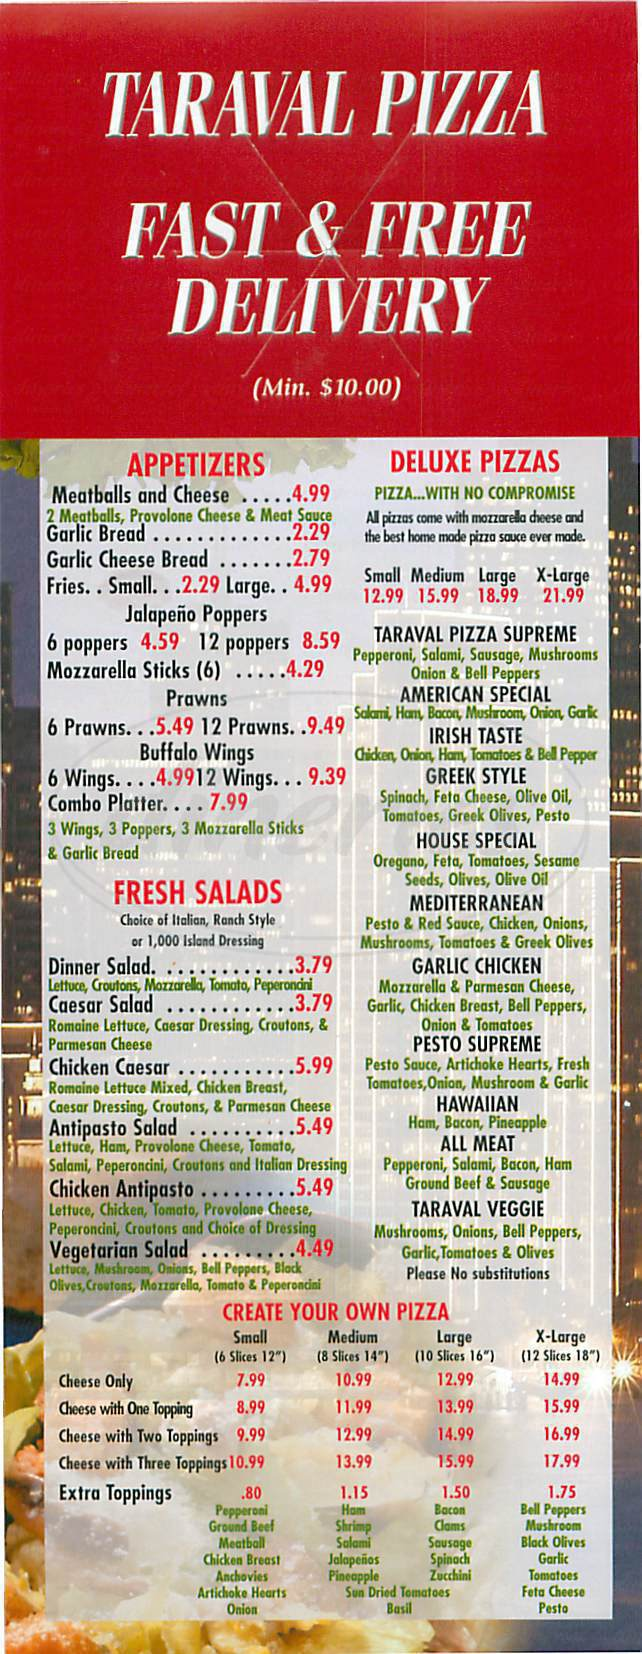 menu for Taraval Pizza